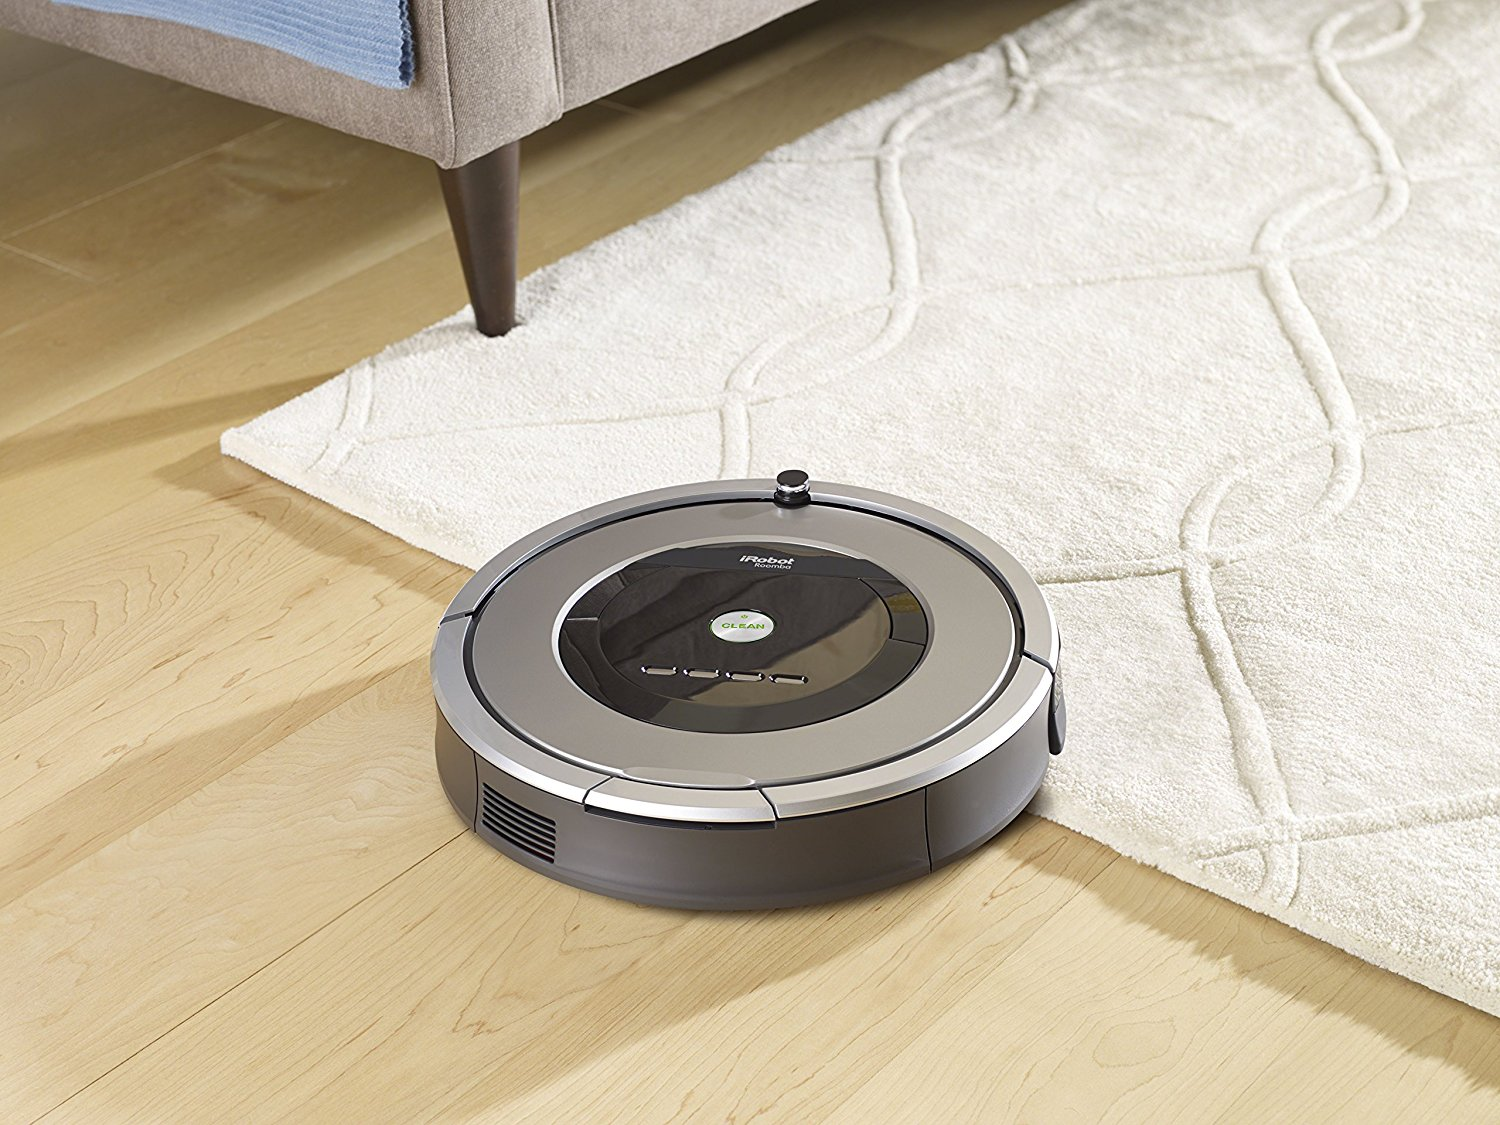 Robotic vacuum cleaner transition from floor to carpet